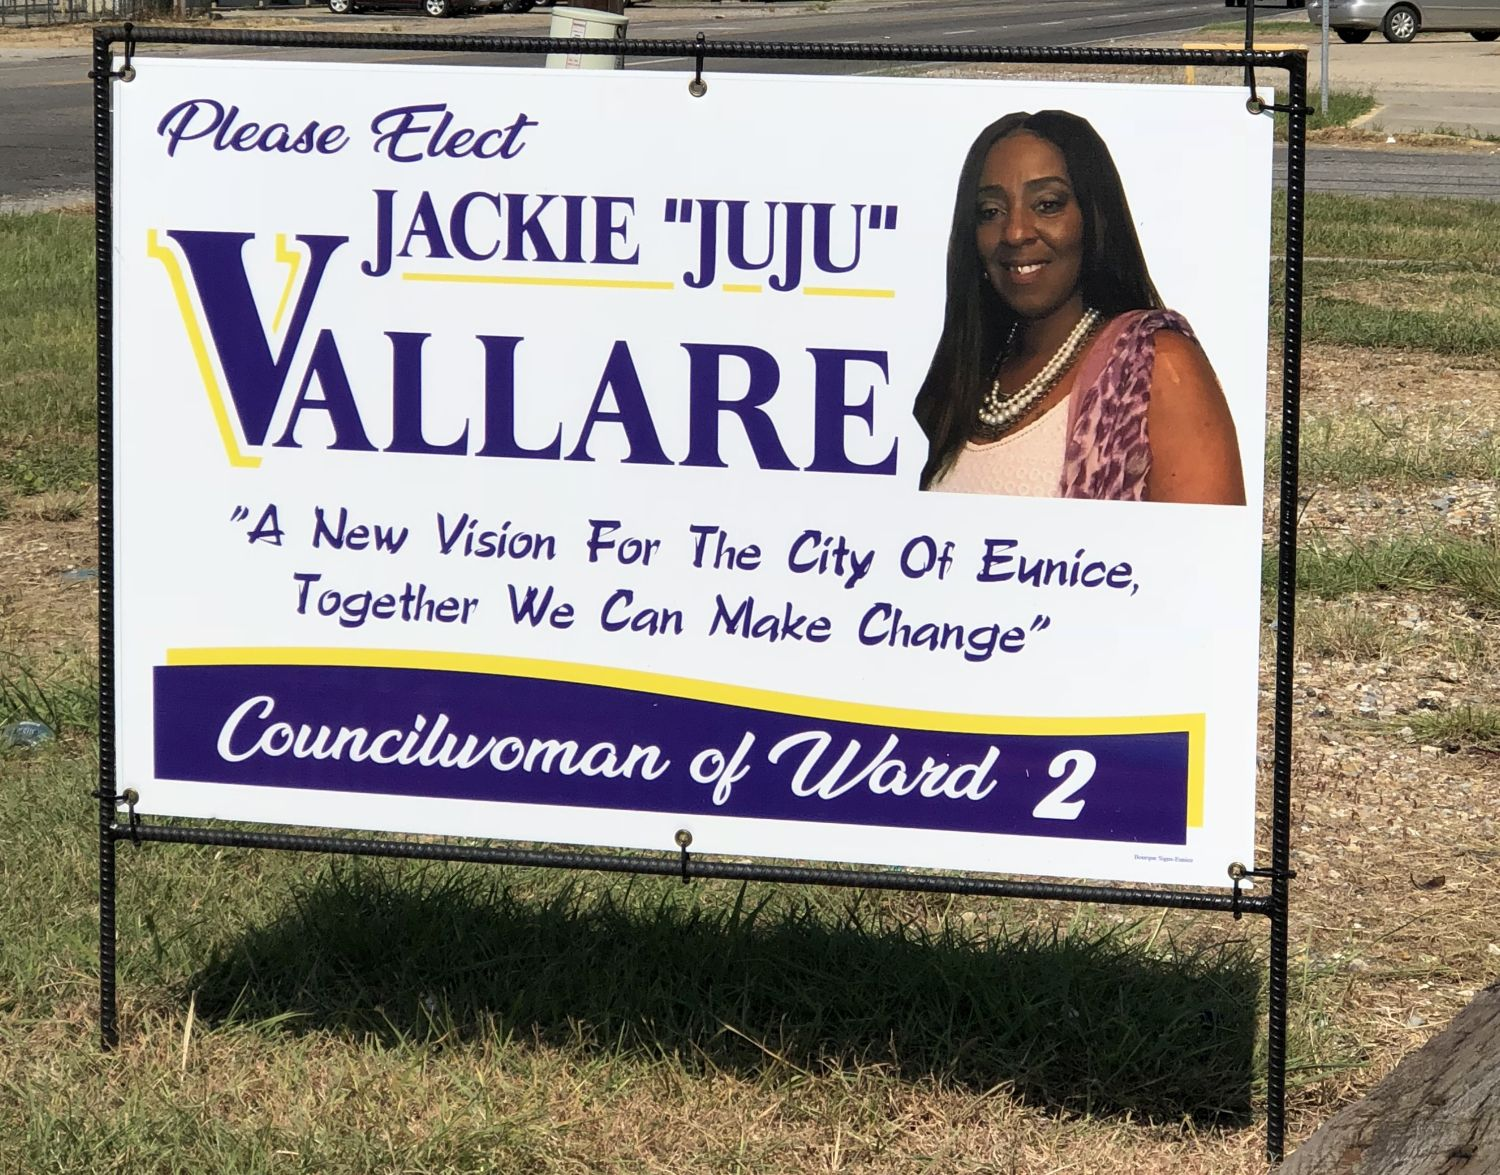 jackie vallare for city council 32 48